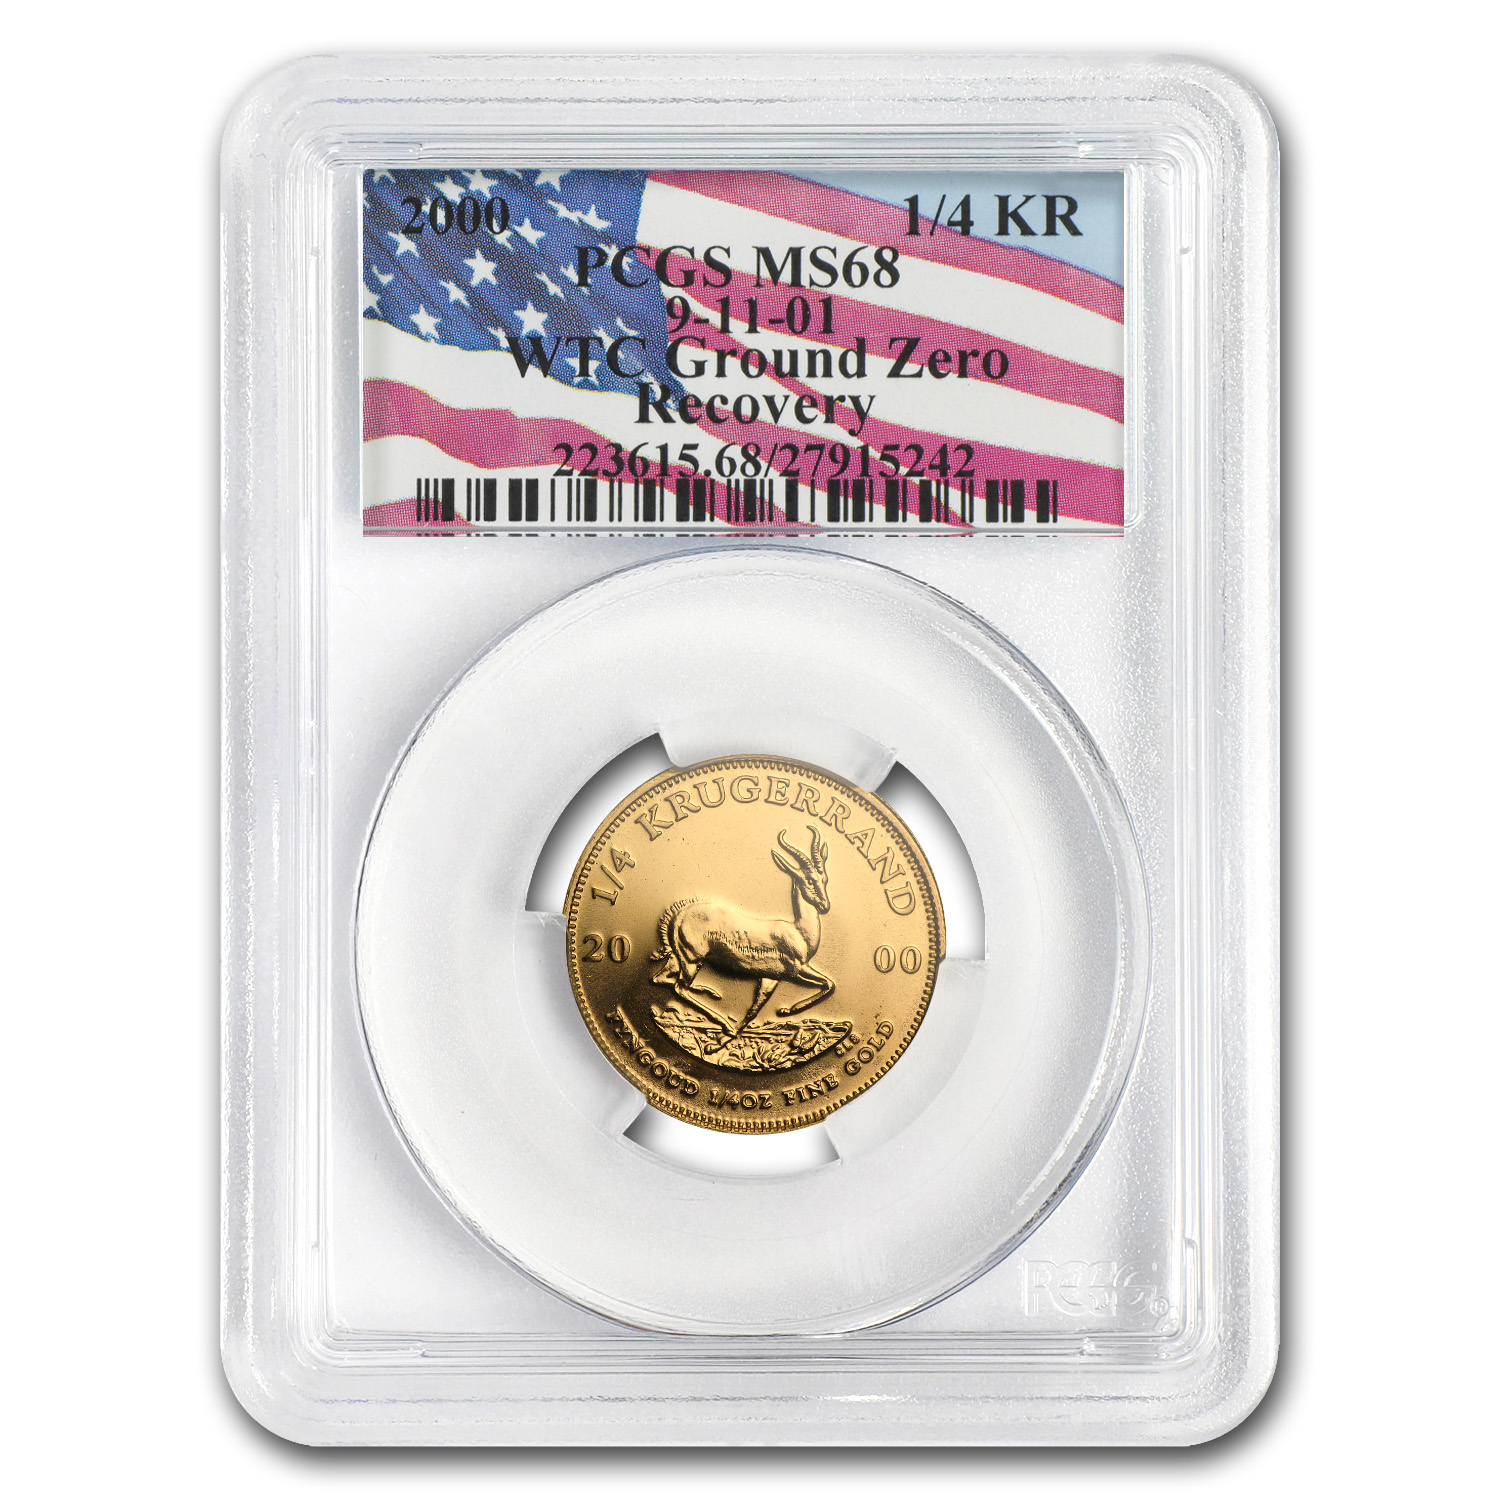 2000 South Africa 1/4 oz Gold Krugerrand MS-68 PCGS (WTC)